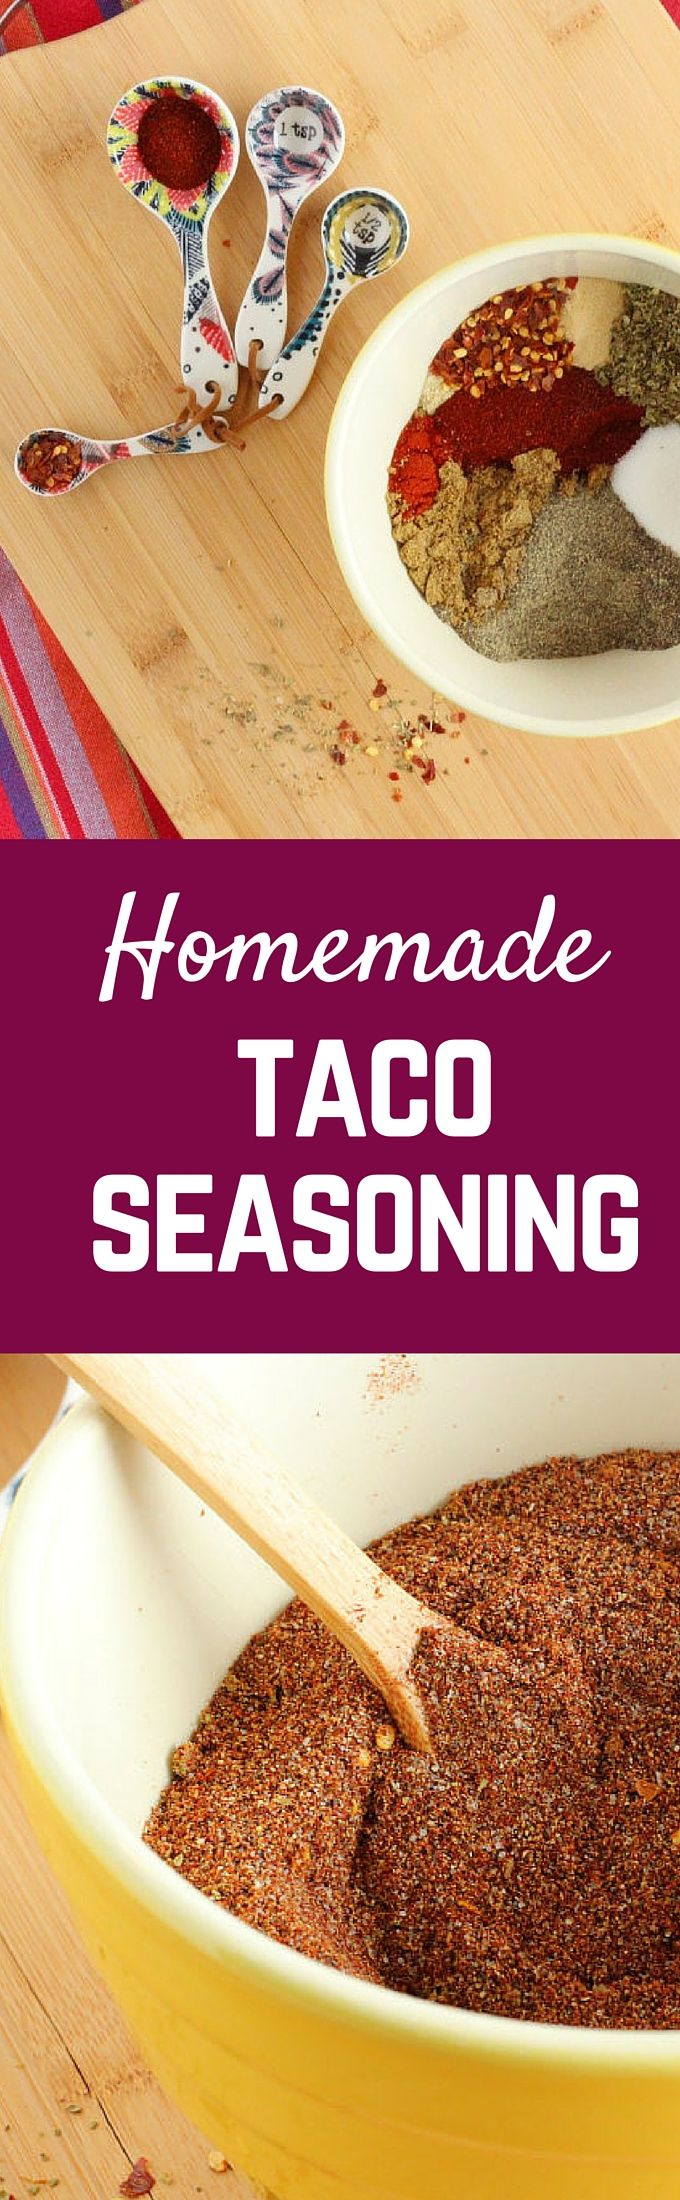 Make this large batch homemade taco seasoning to keep in your pantry. Easy to make and much better for you than store-bought. Get the recipe on RachelCooks.com!